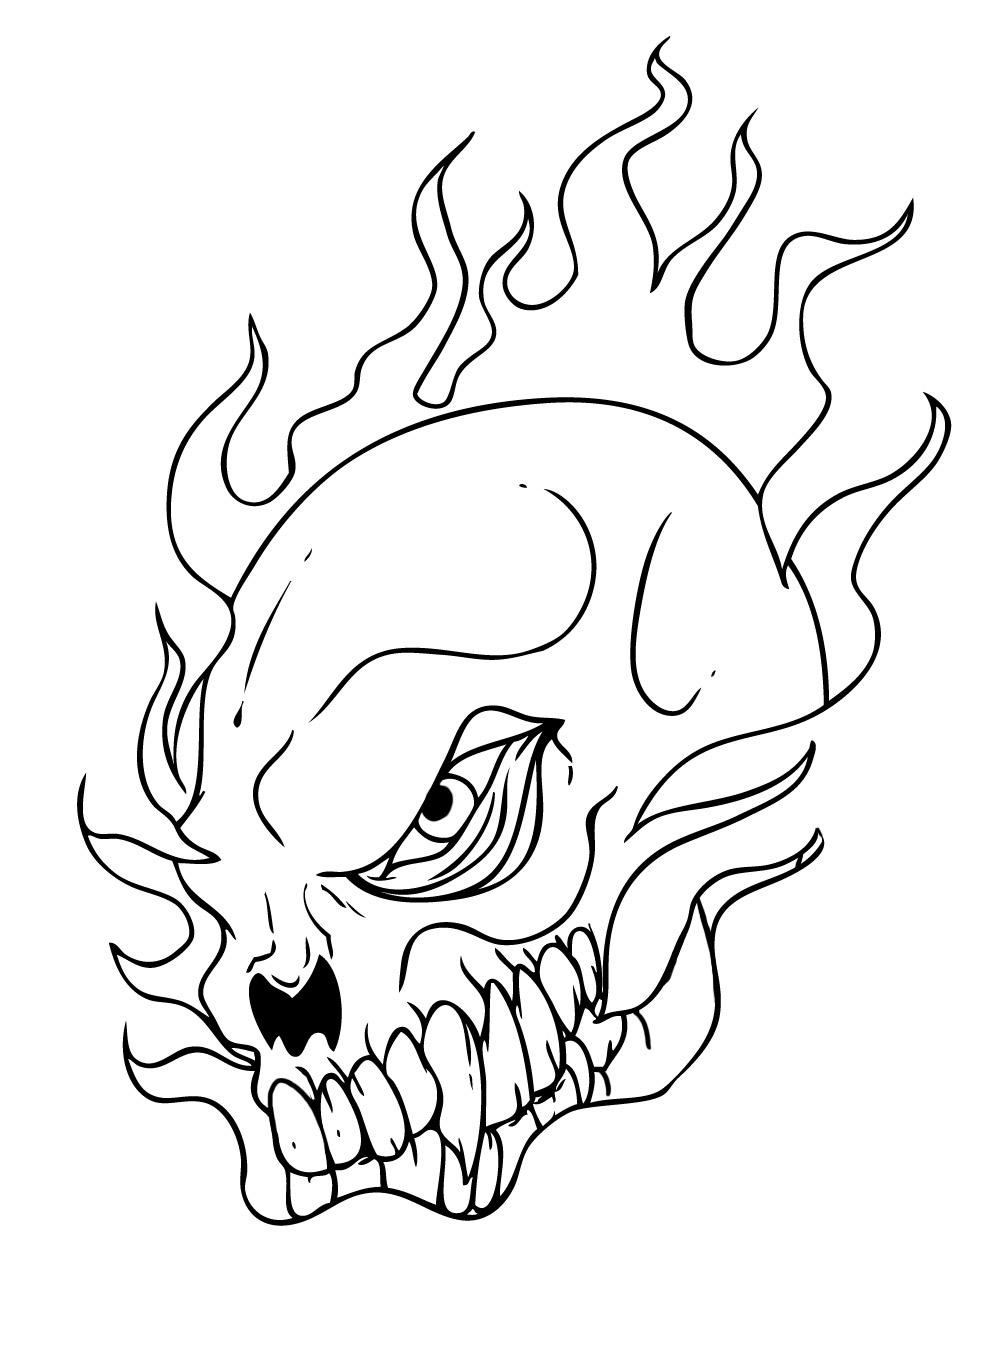 Santa Skull Coloring Pages With Free Printable For Kids